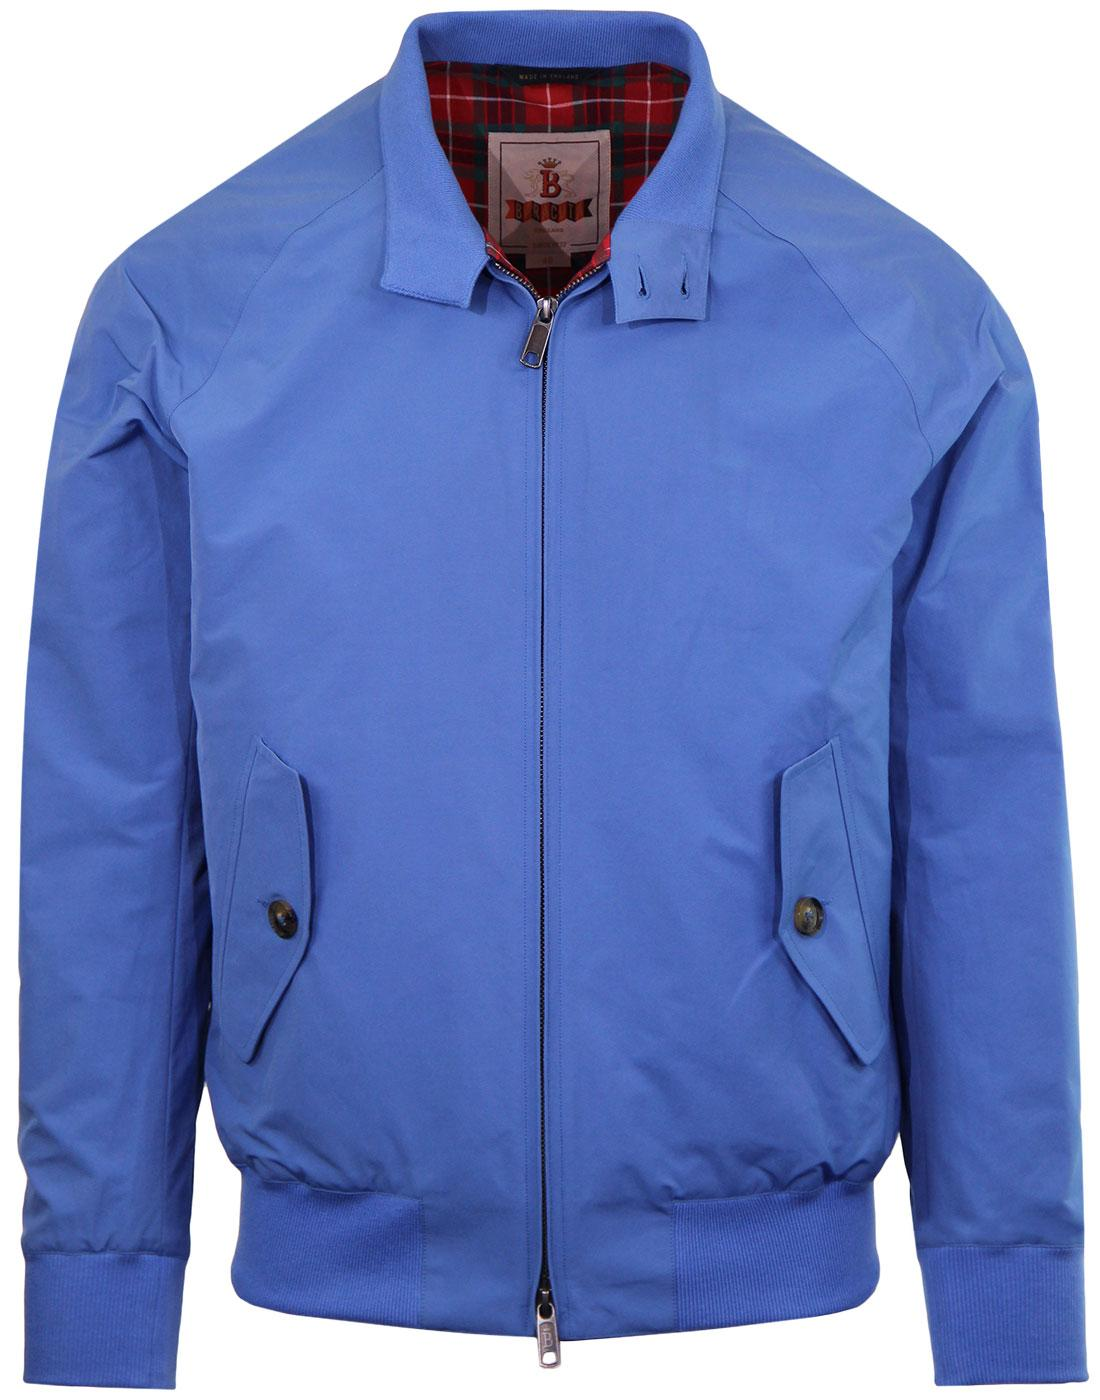 BARACUTA G9 Original Made in England Harrington CB